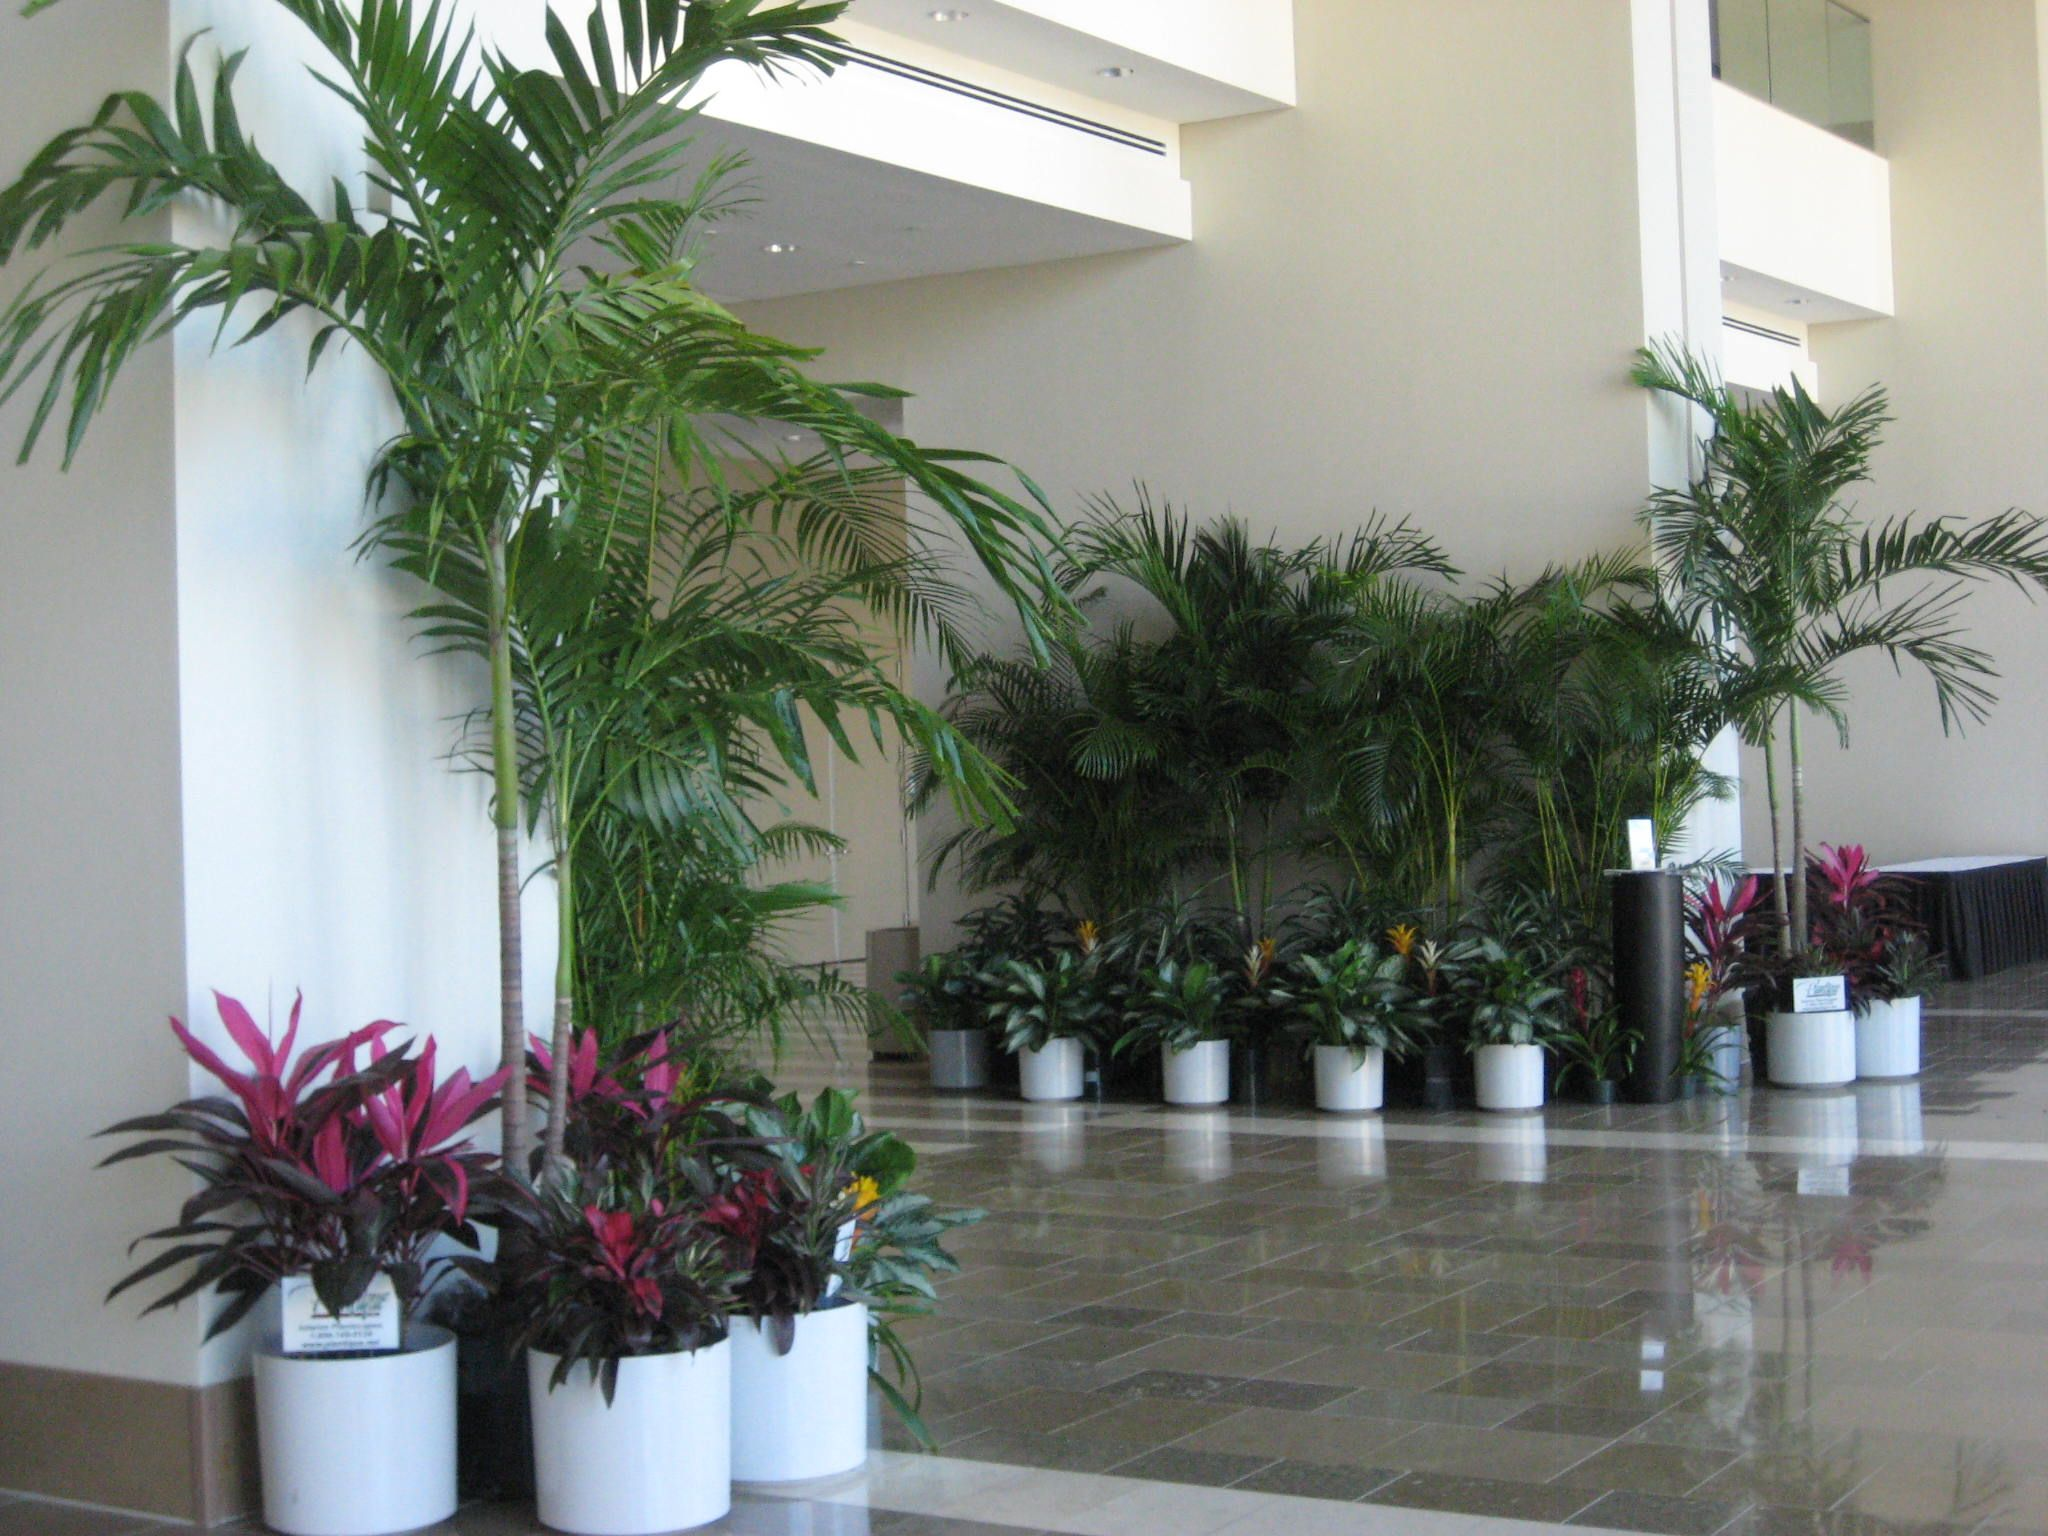 Plants & trees help guide patrons into an exhibition hall